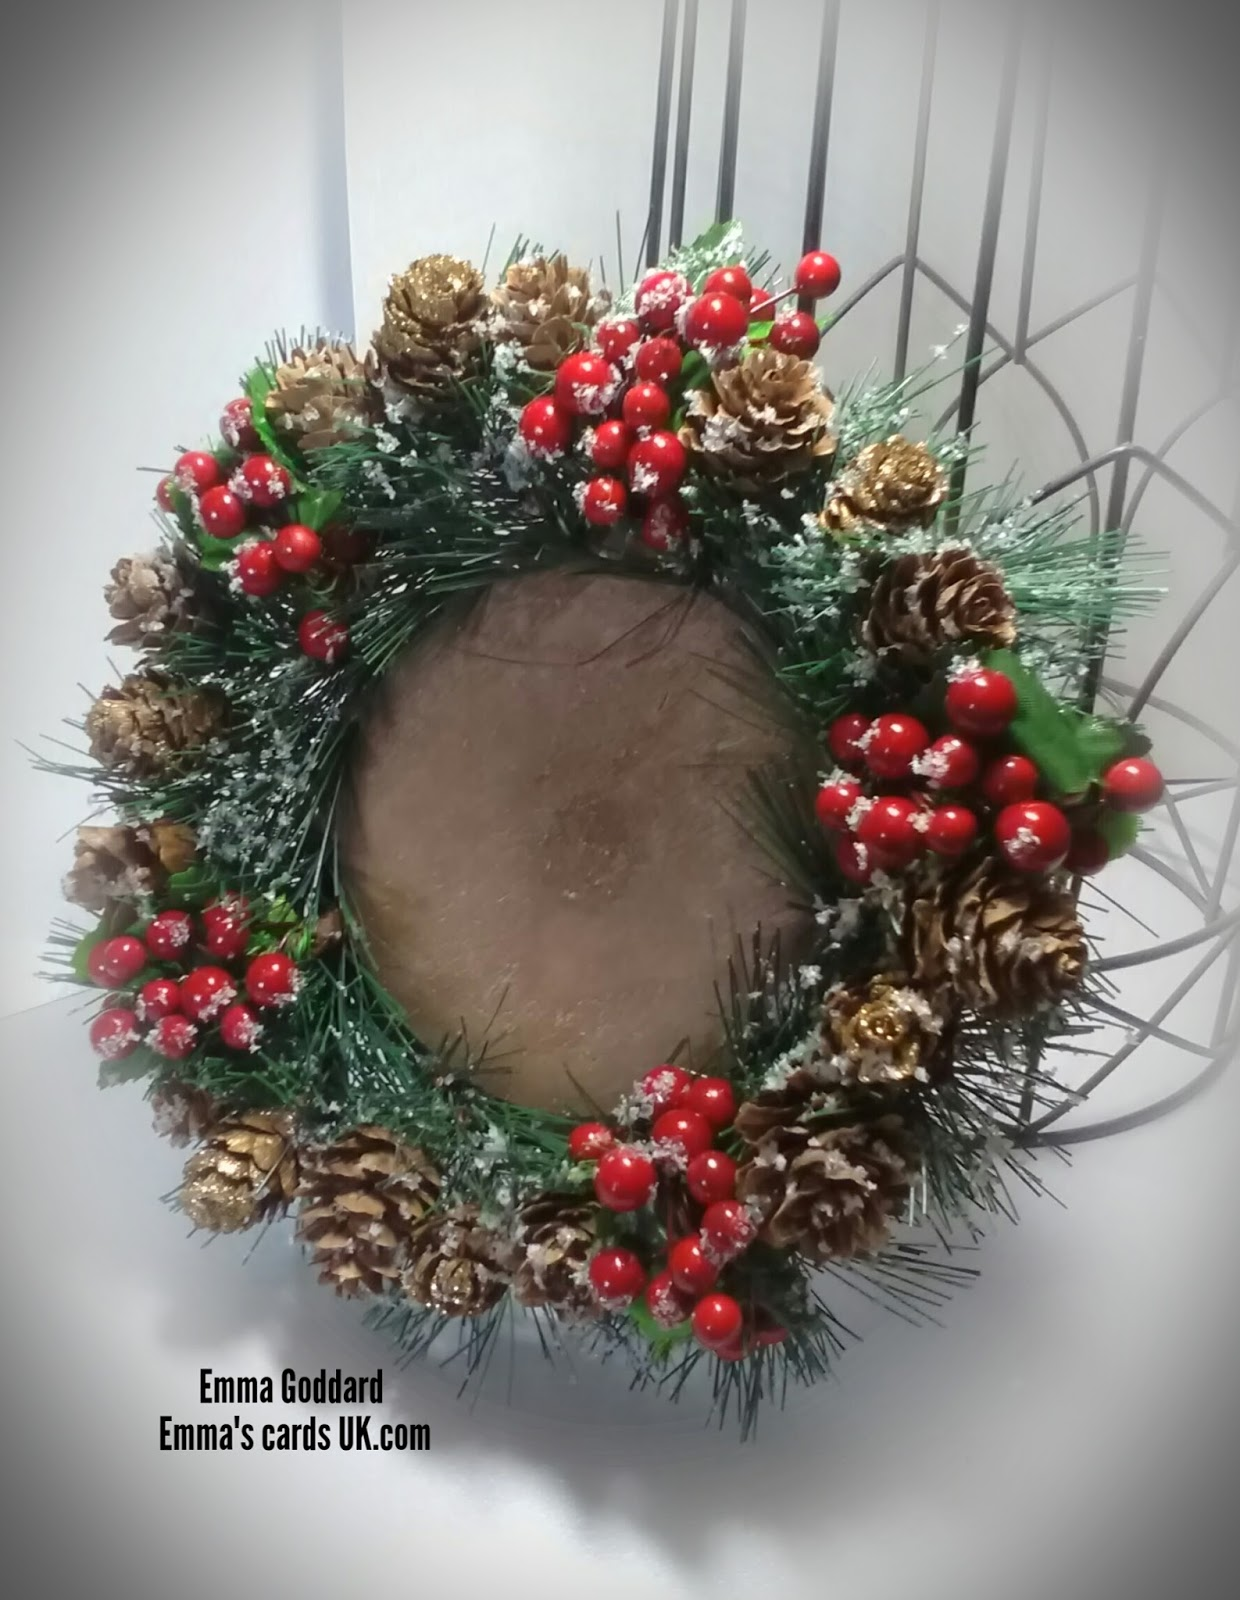 Emmas cards uk projectstechniques a wooden disc baker ross and hobbycraft sell them faux berries larch cones and artificial pine branches polar white flower soft pva glue and glitter mightylinksfo